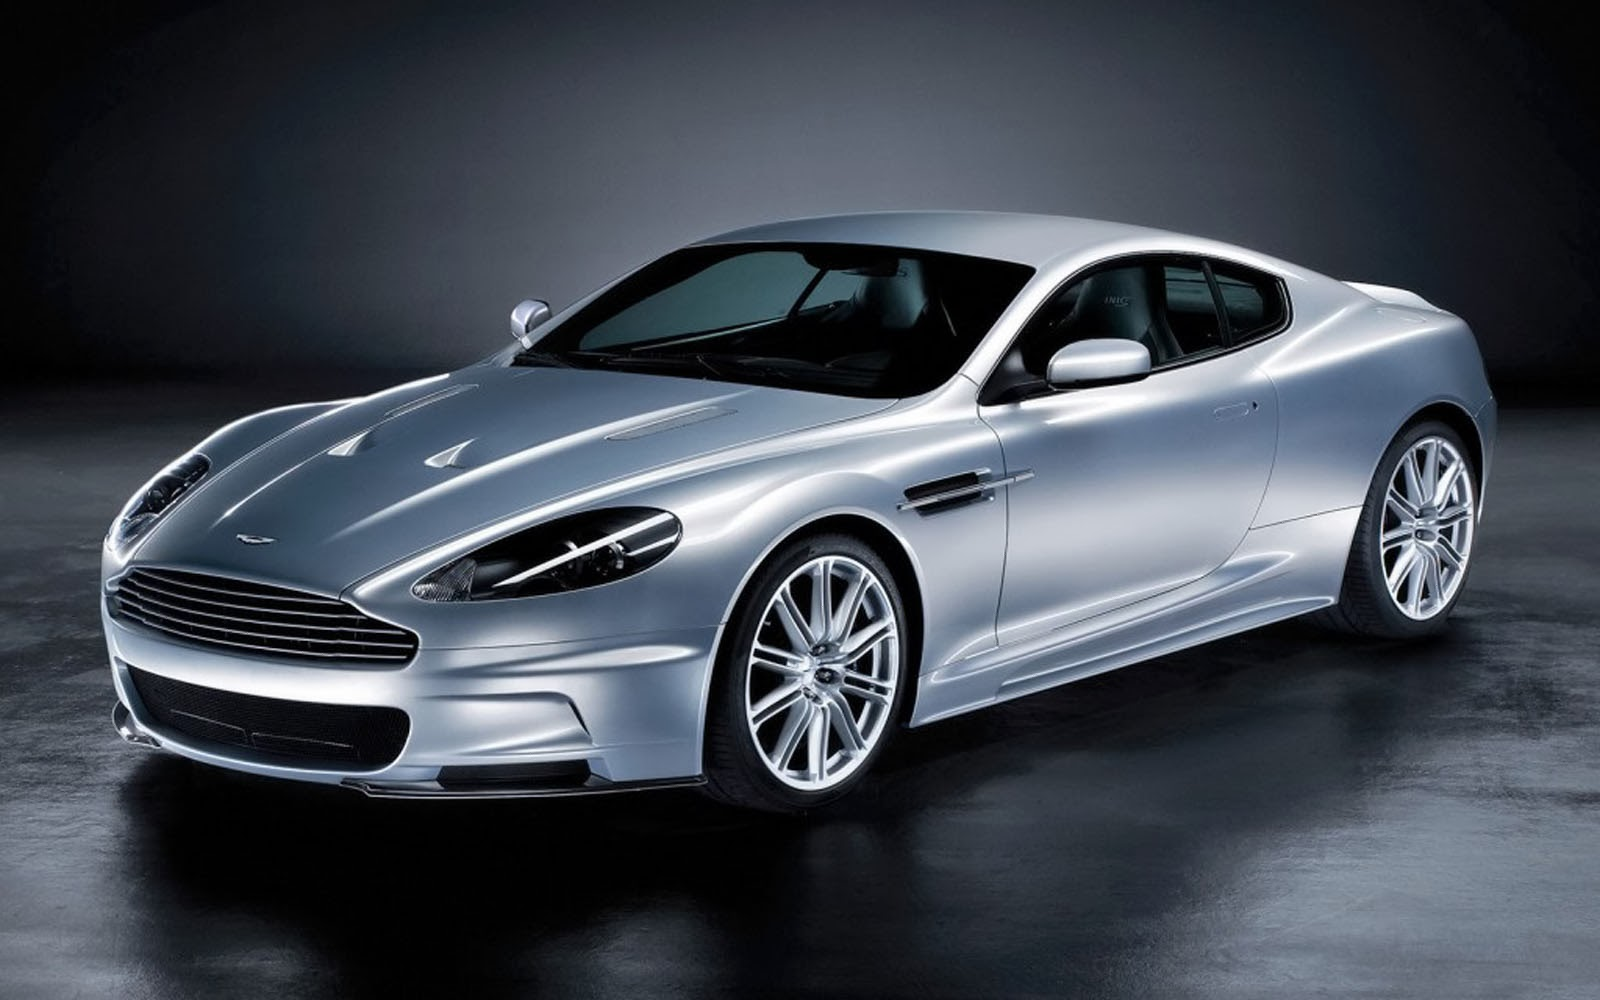 wallpapers aston martin dbs wallpapers. Black Bedroom Furniture Sets. Home Design Ideas